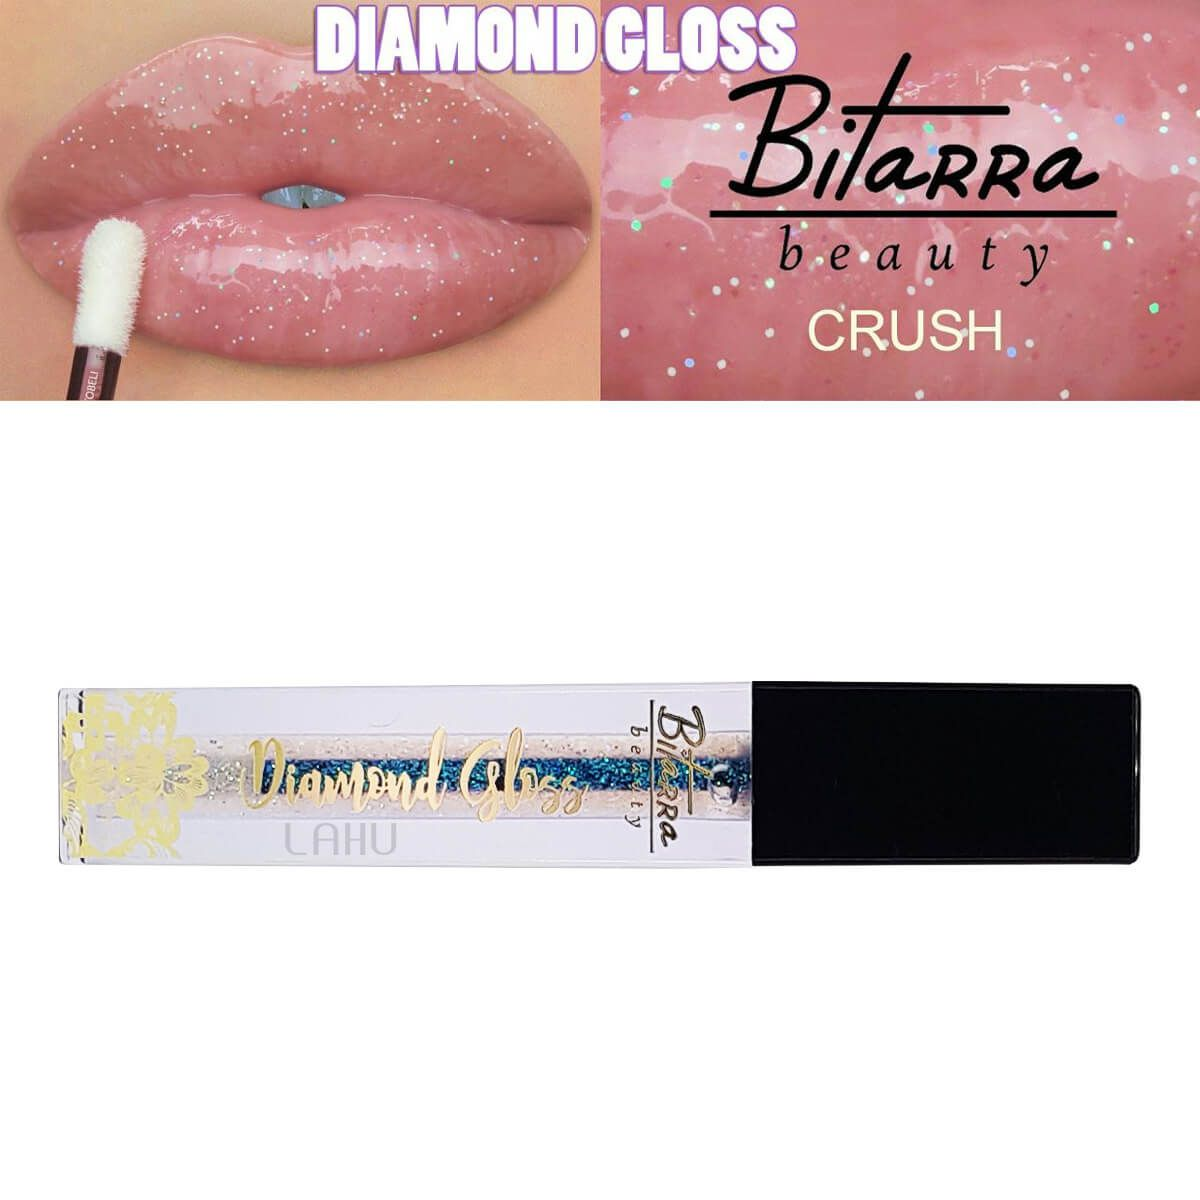 Gloss Diamond Crush Bitarra